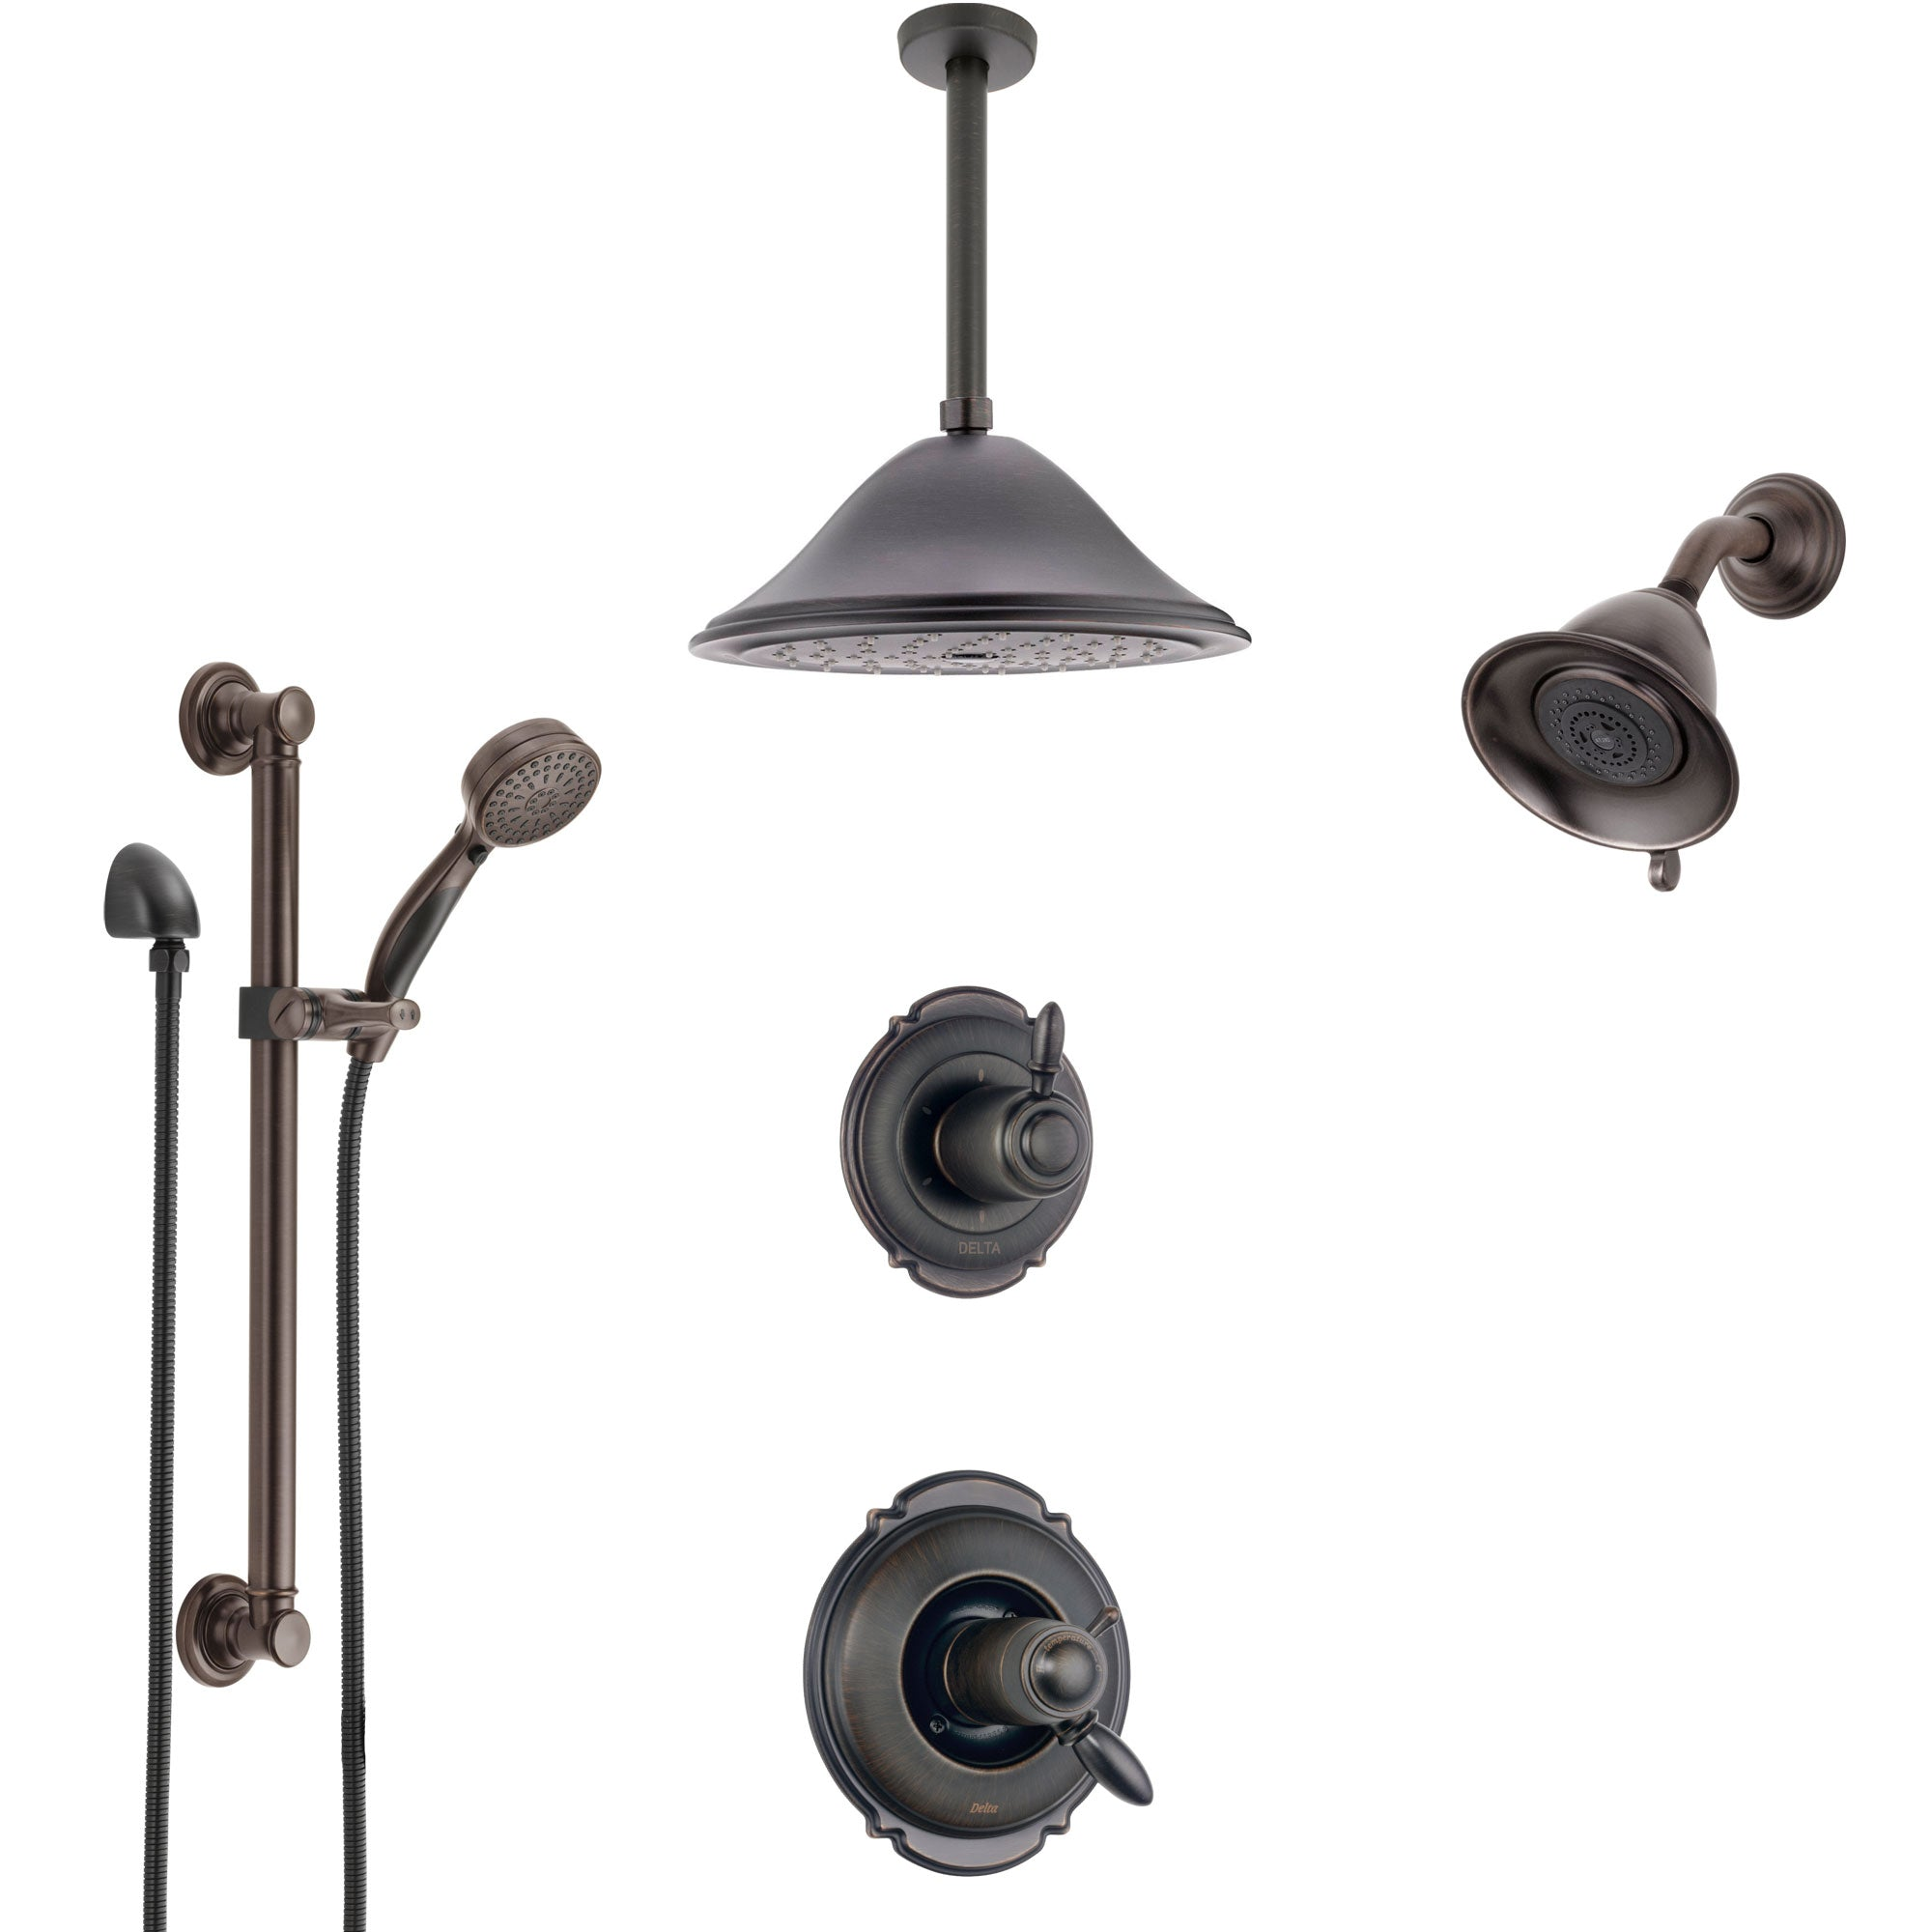 Delta Victorian Venetian Bronze Dual Thermostatic Control Shower System, Diverter, Showerhead, Ceiling Showerhead, Grab Bar Hand Spray SS17T2552RB5